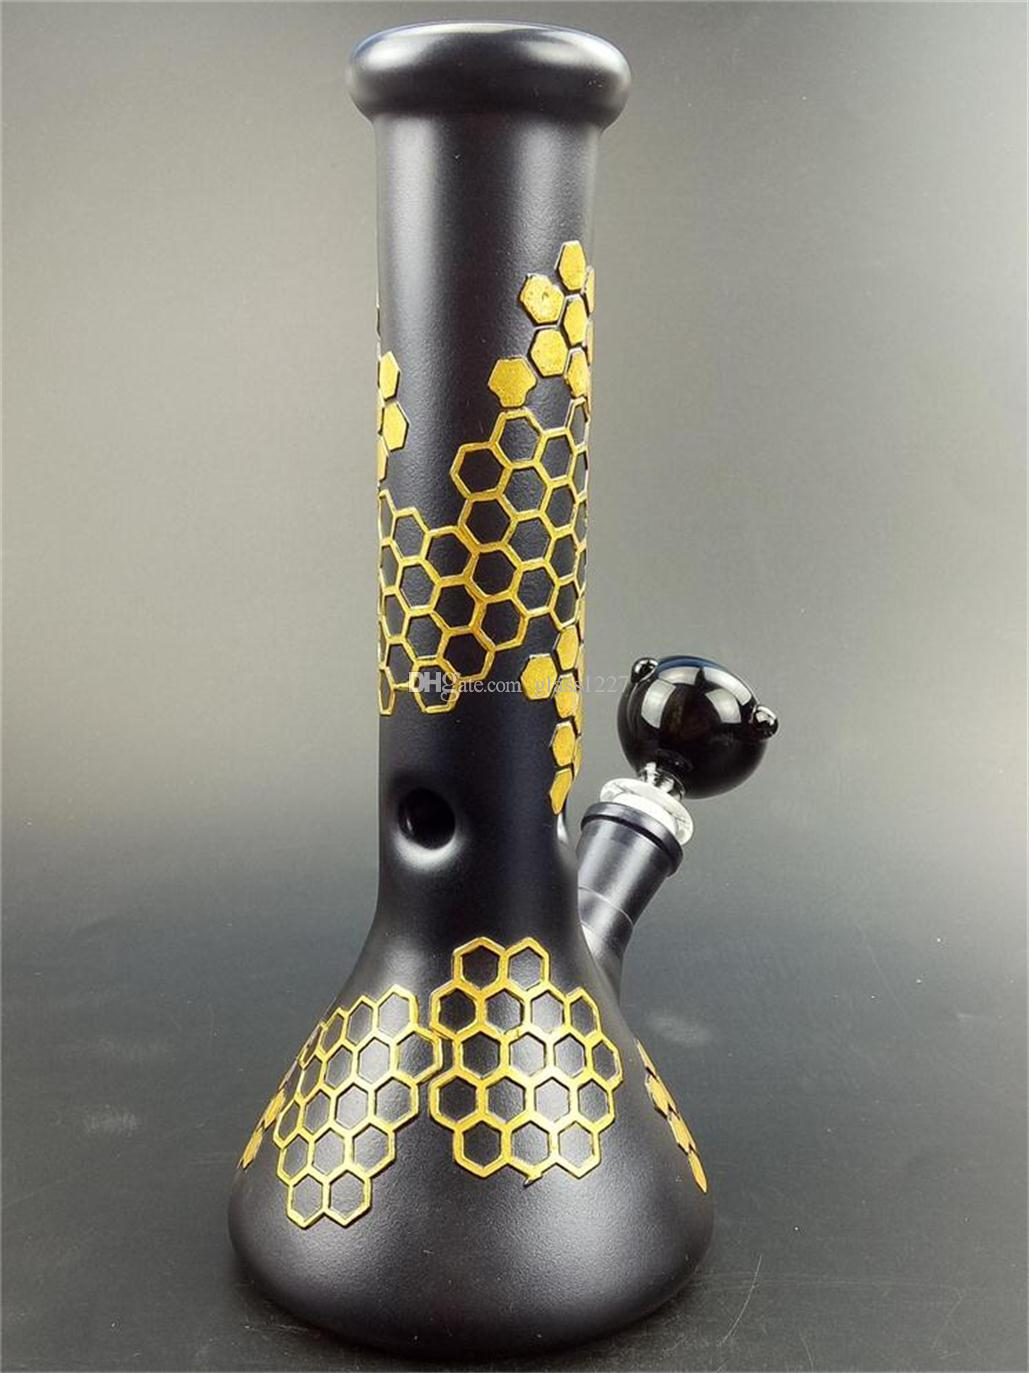 Glass bong manufacturers selling glass hookah water pipe glass sound in the recycle bin is favorable